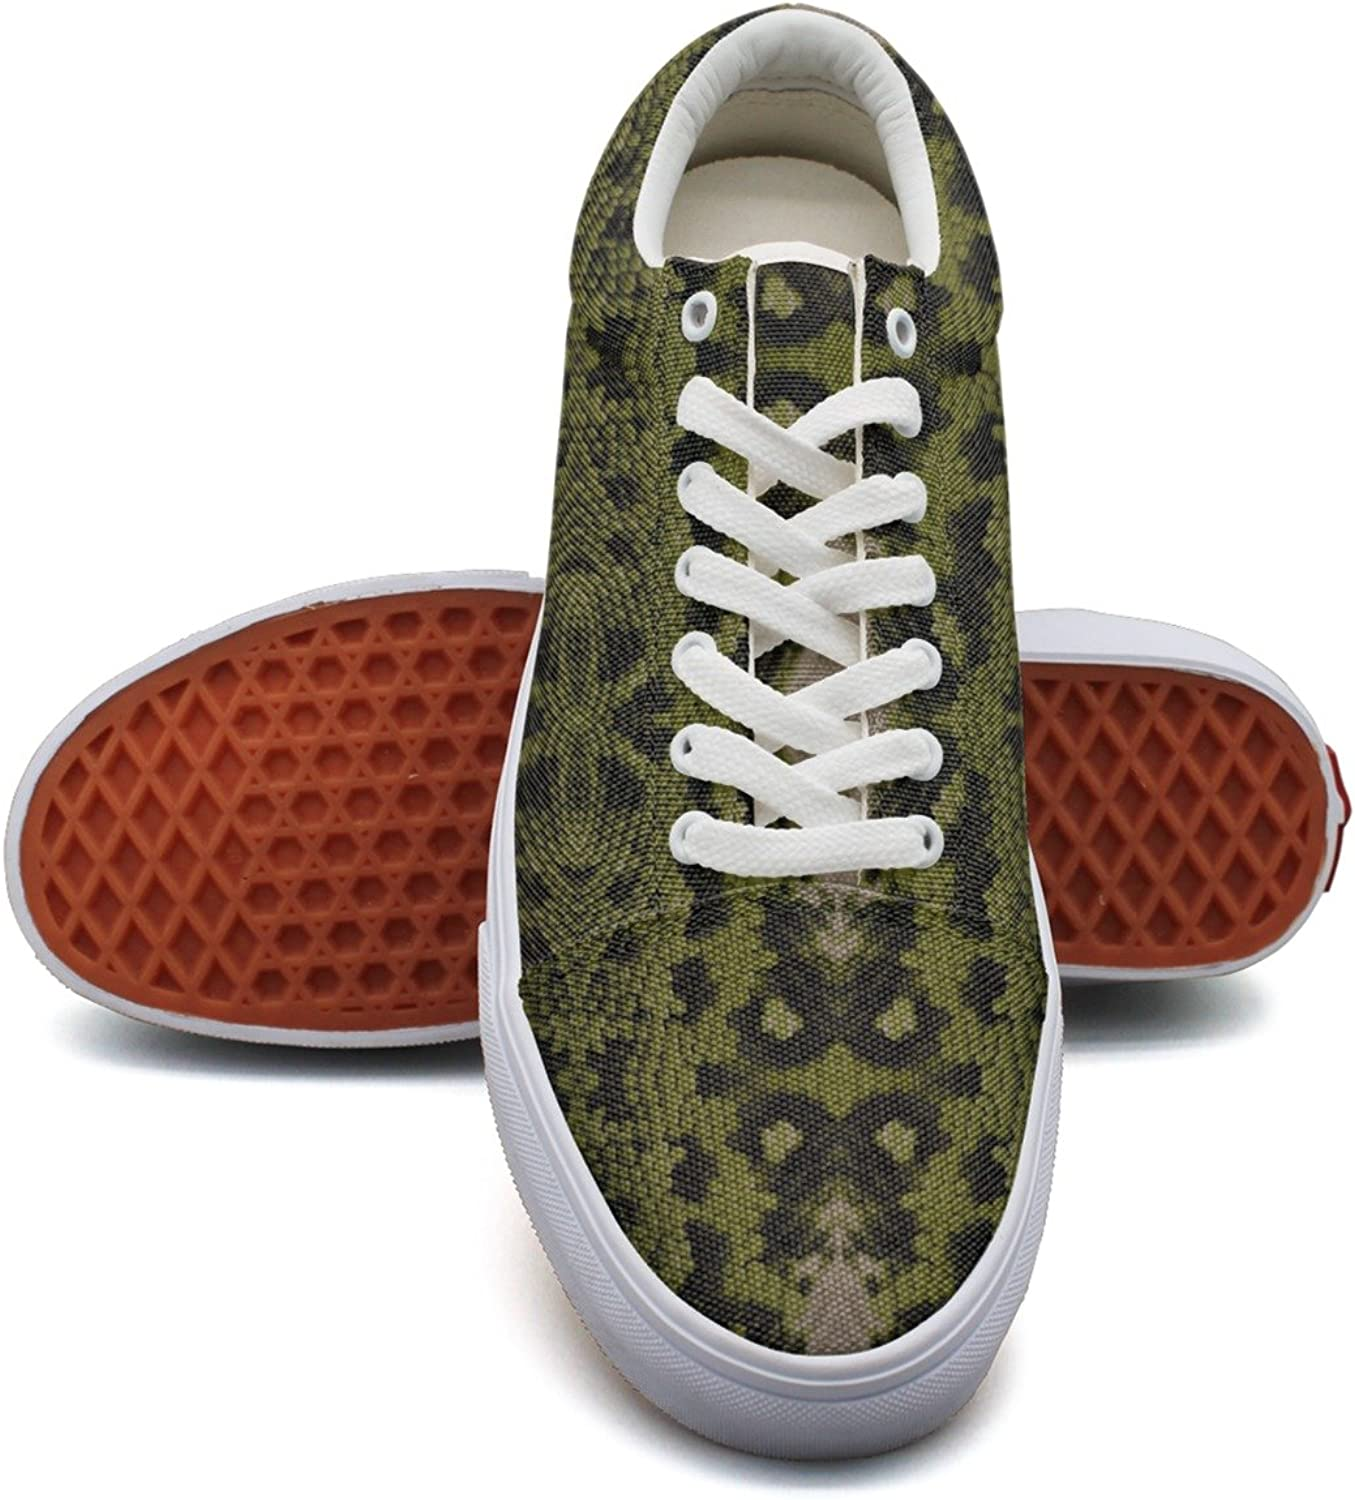 Milr Gile Green Python Snake Skin Print Sneaker Flat Canvas shoes for Womens Stylish